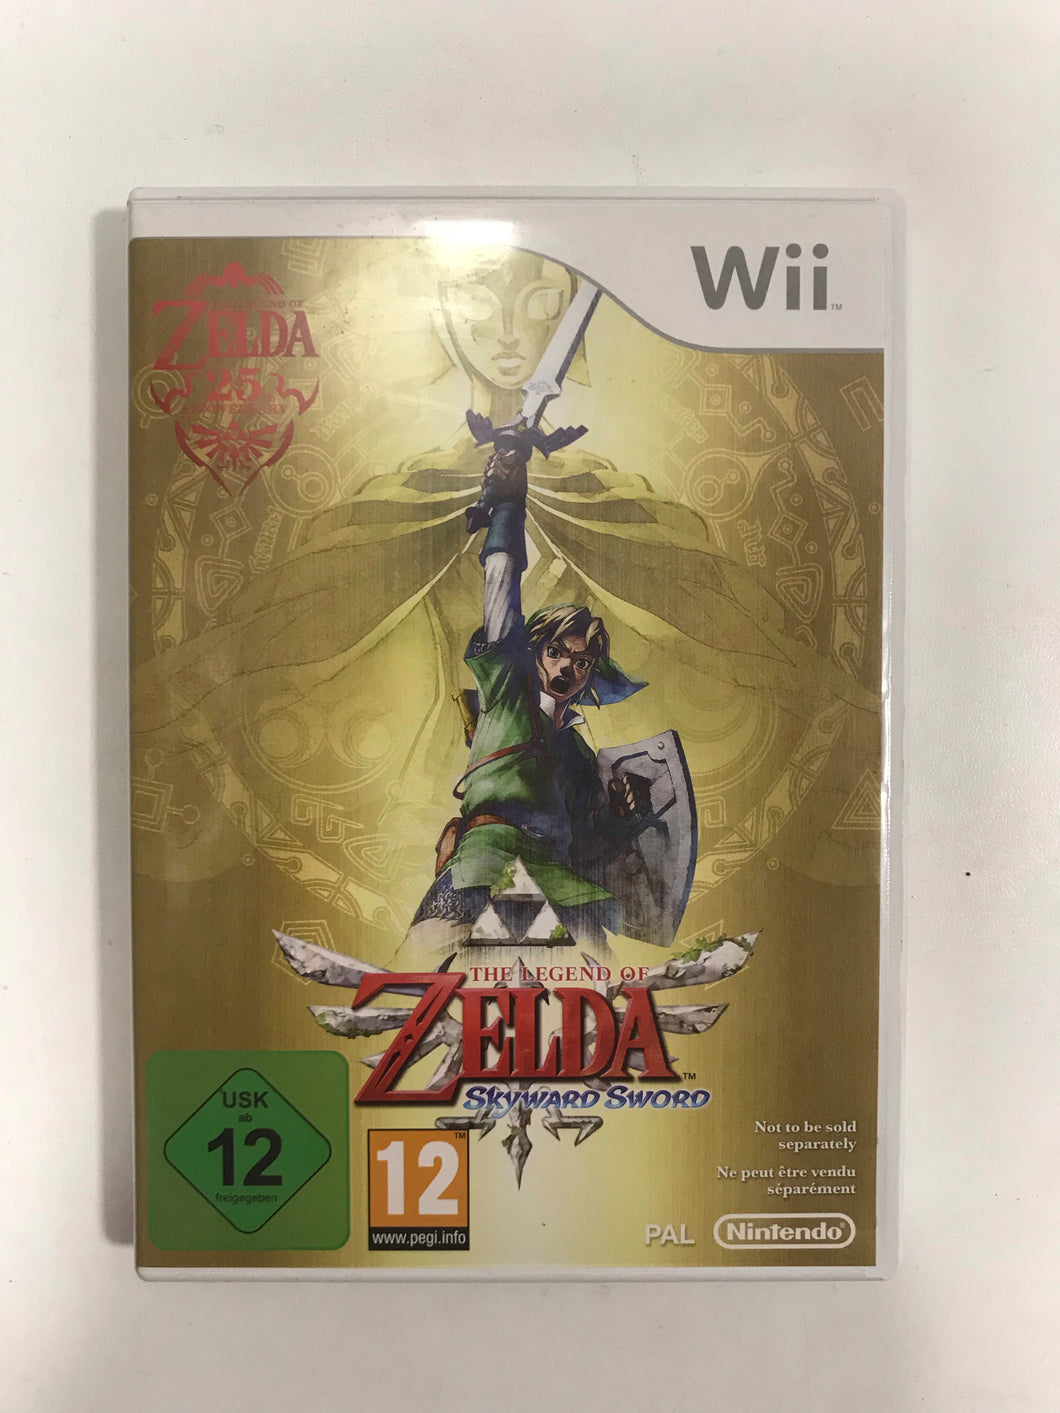 The légend of zelda skyward sword PAL Nintendo wii complet